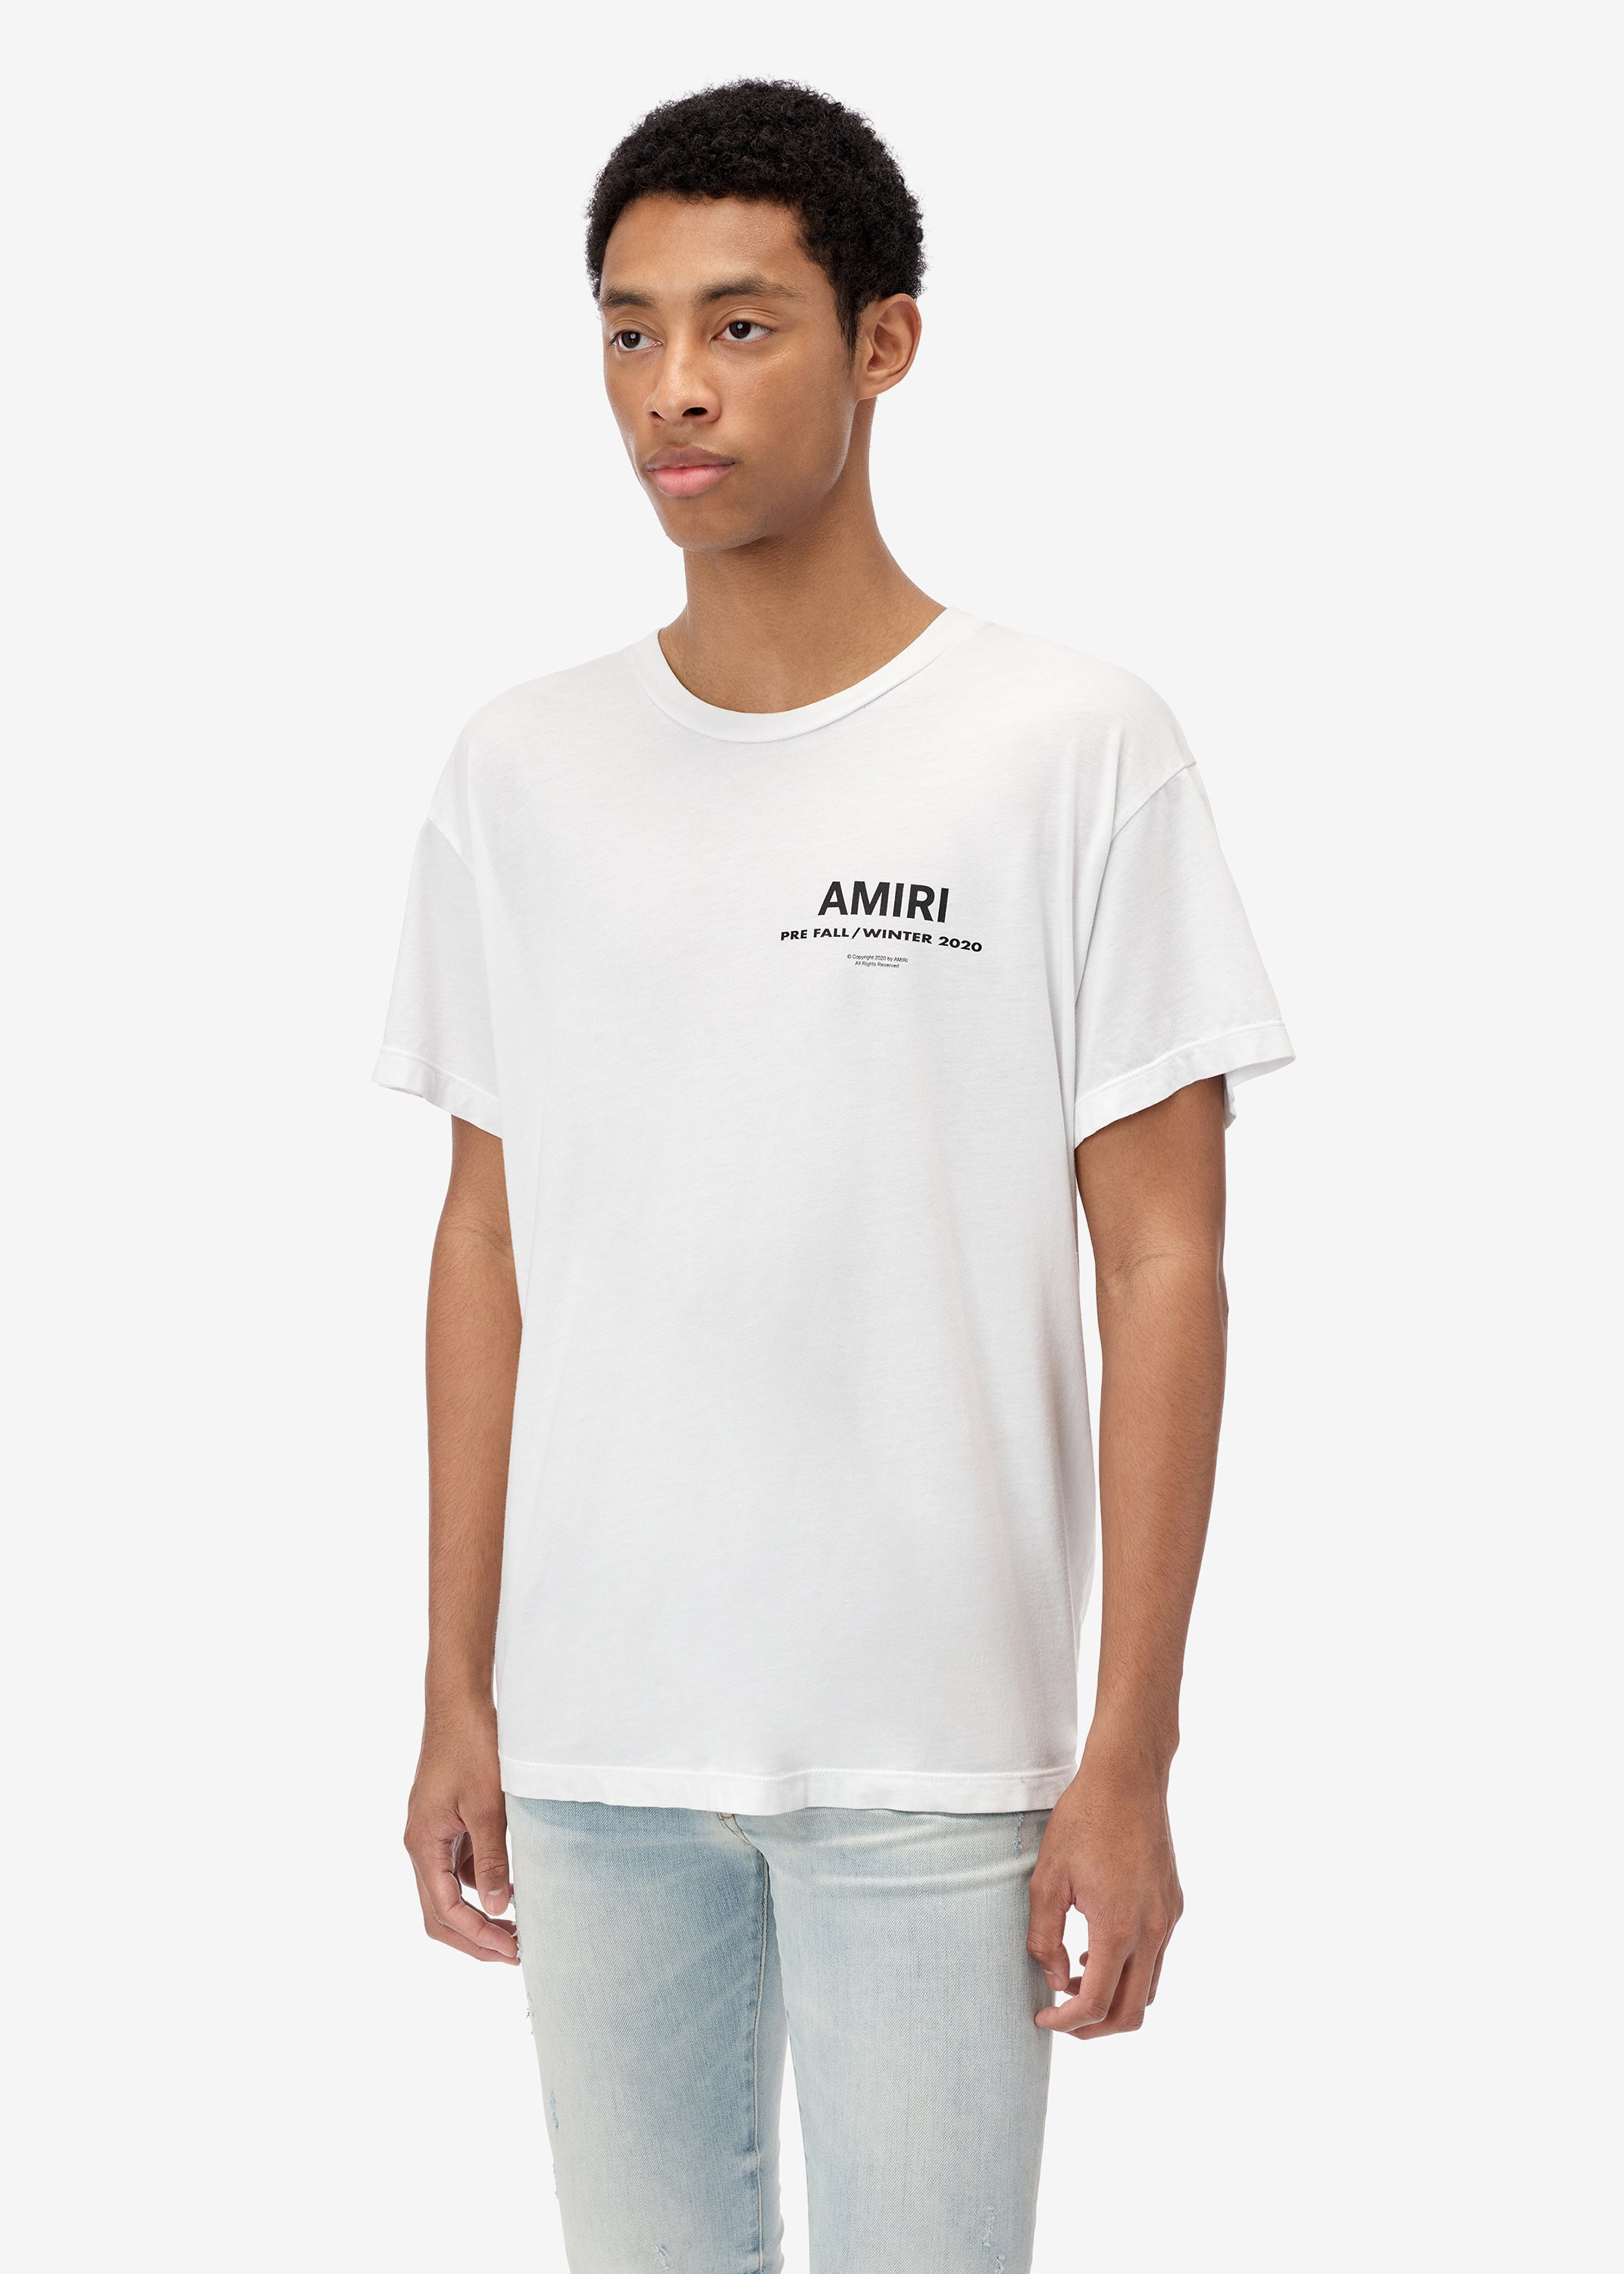 pf20-amiri-tee-web-exclusive-white-image-2